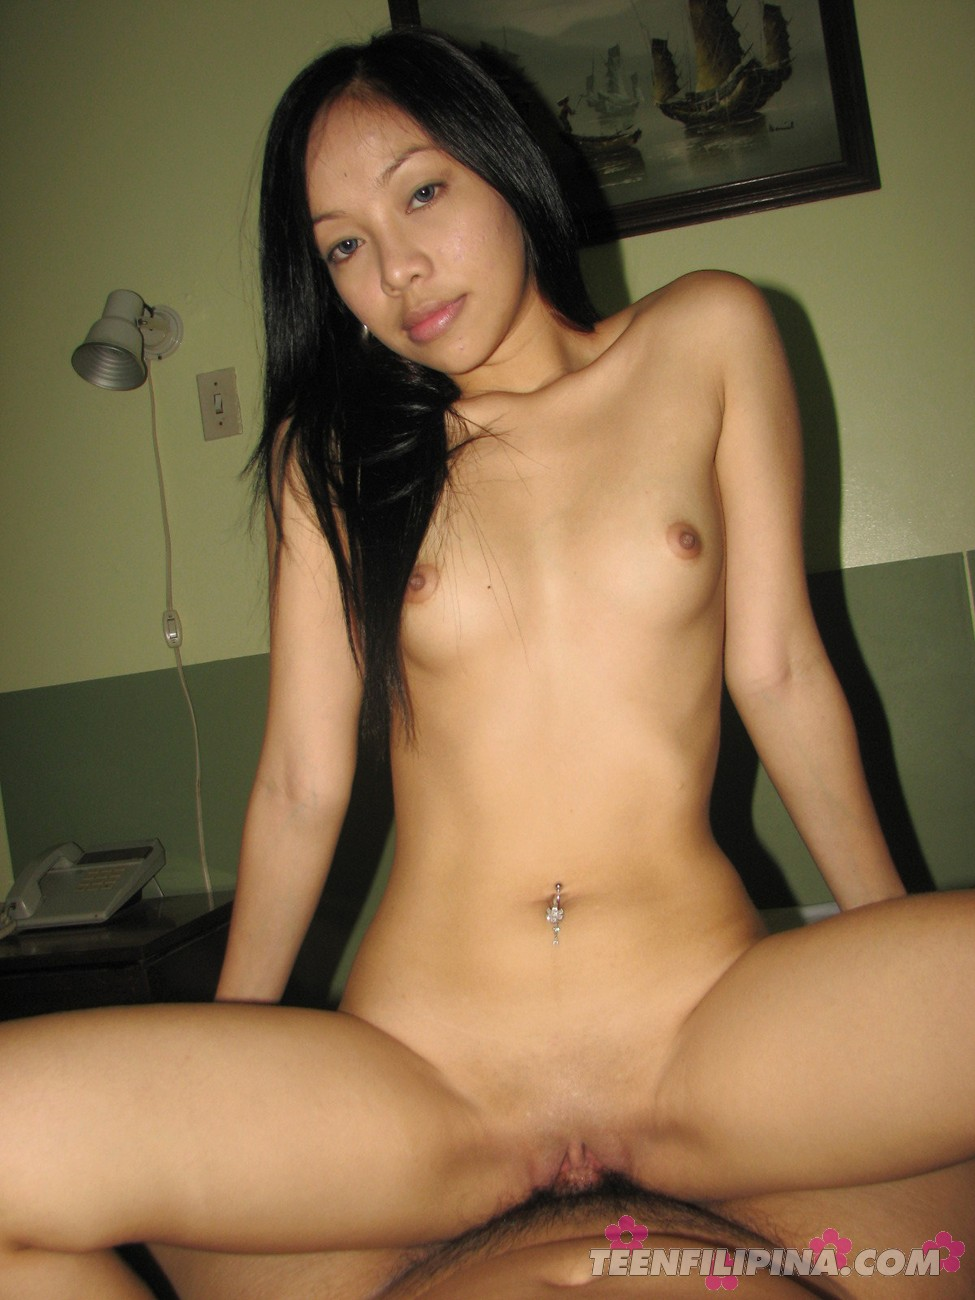 Small Breasted Girl In Action  Asian Porn Photos-8568